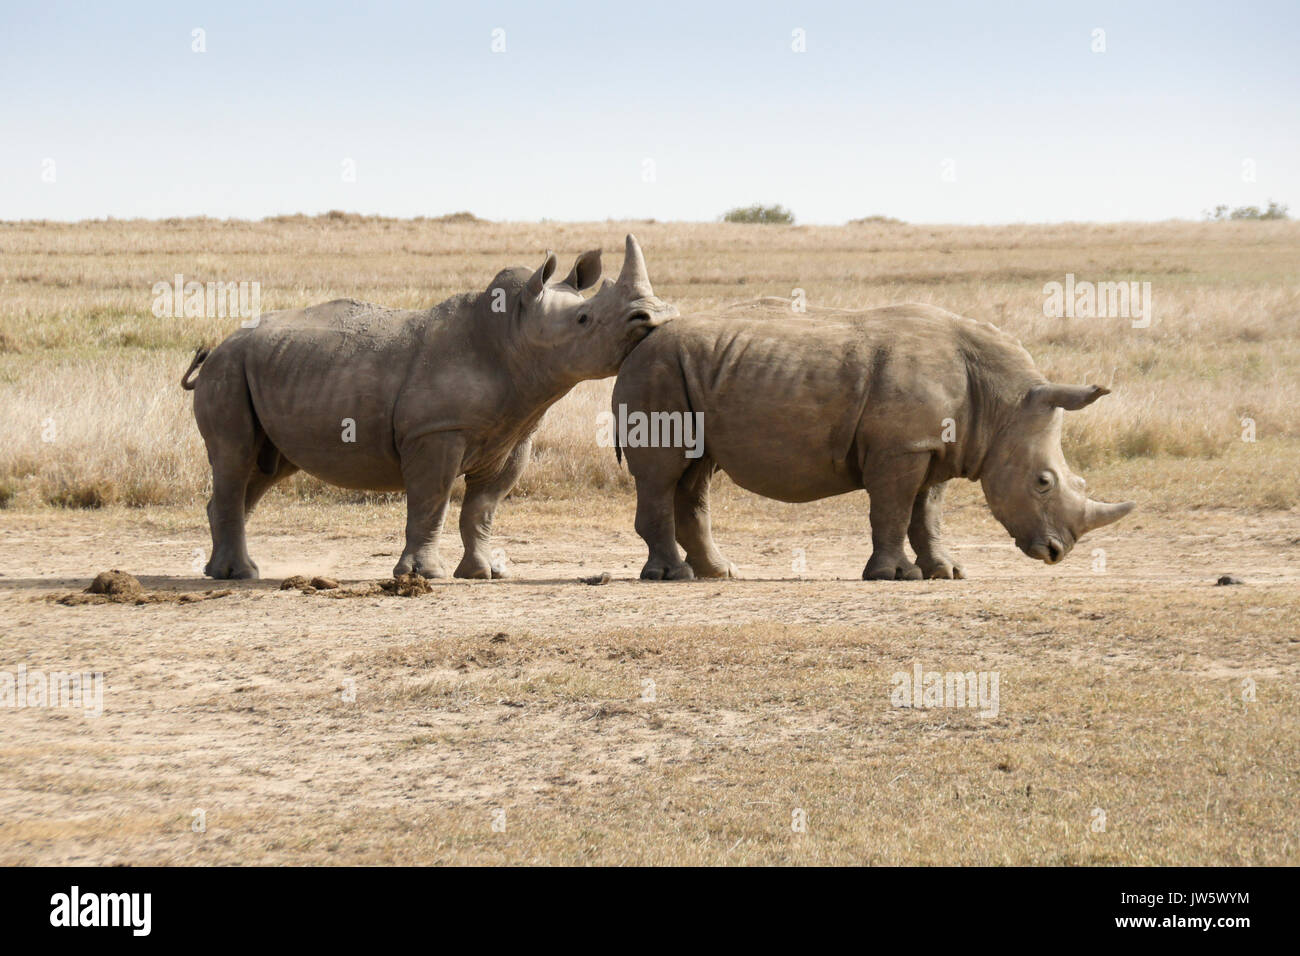 Male white rhino showing dominance over submissive male after friendly sparring, Ol Pejeta Conservancy, Kenya - Stock Image